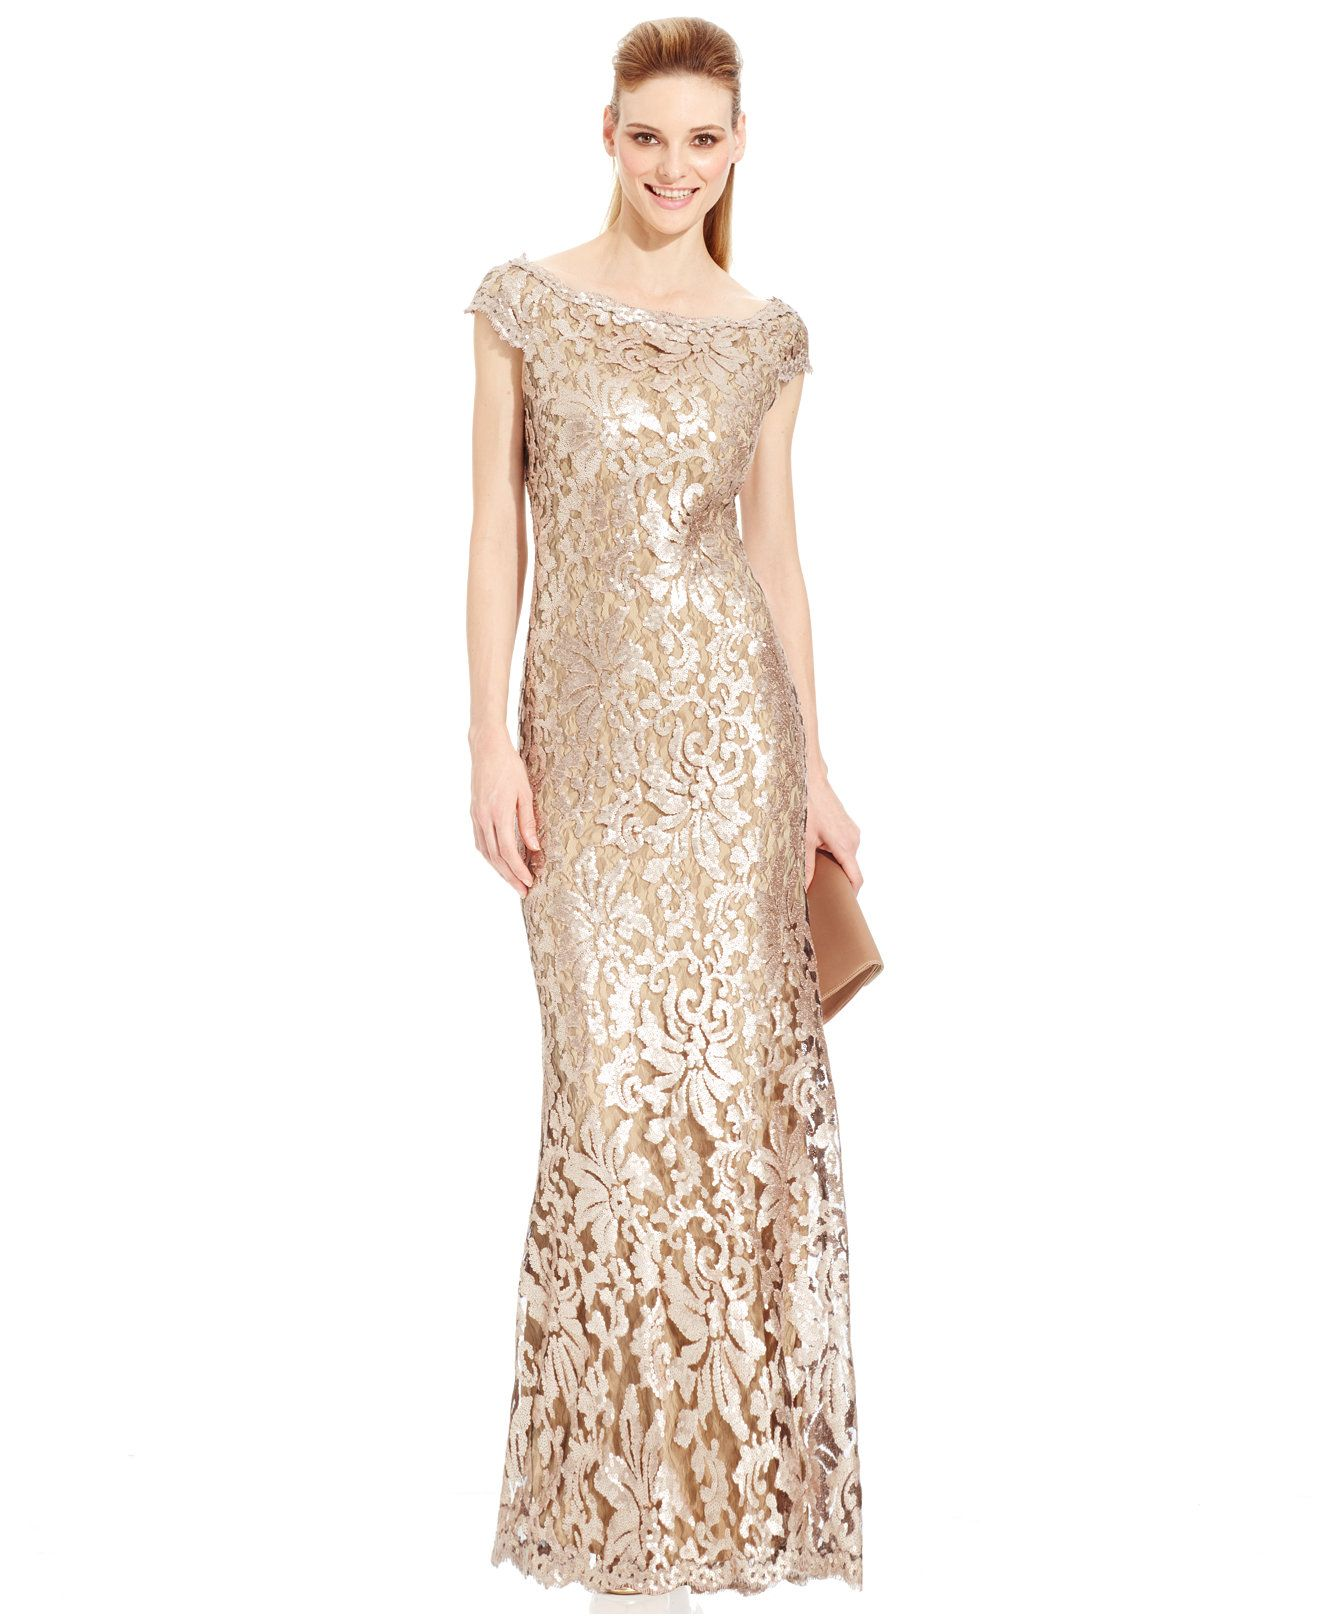 Adrianna Papell Sequin-Embellished Metallic Gown - Dresses - Women